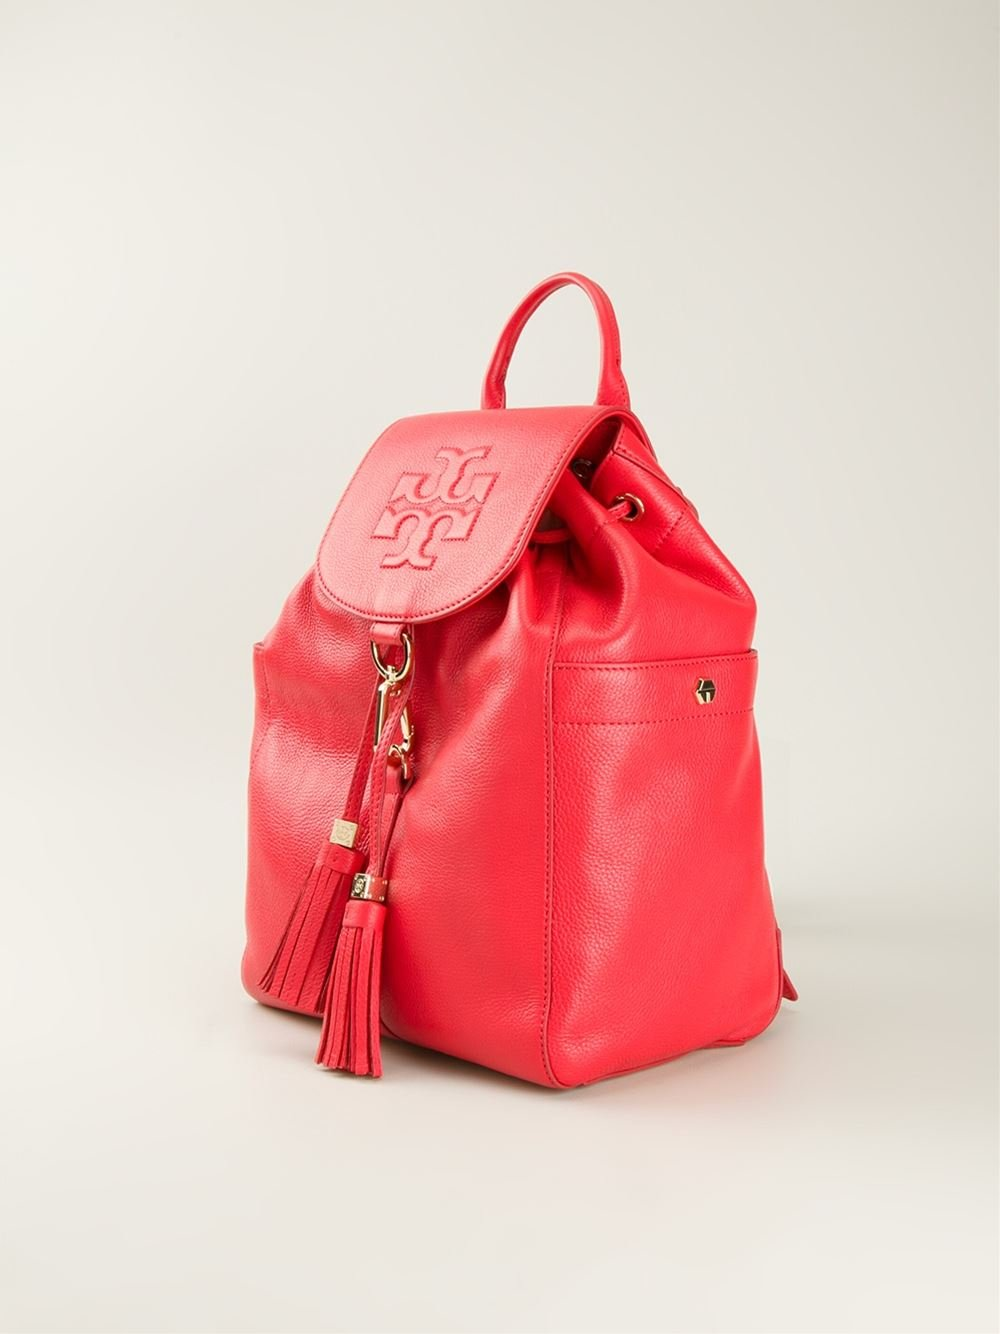 Lyst - Tory burch Thea Backpack in Red